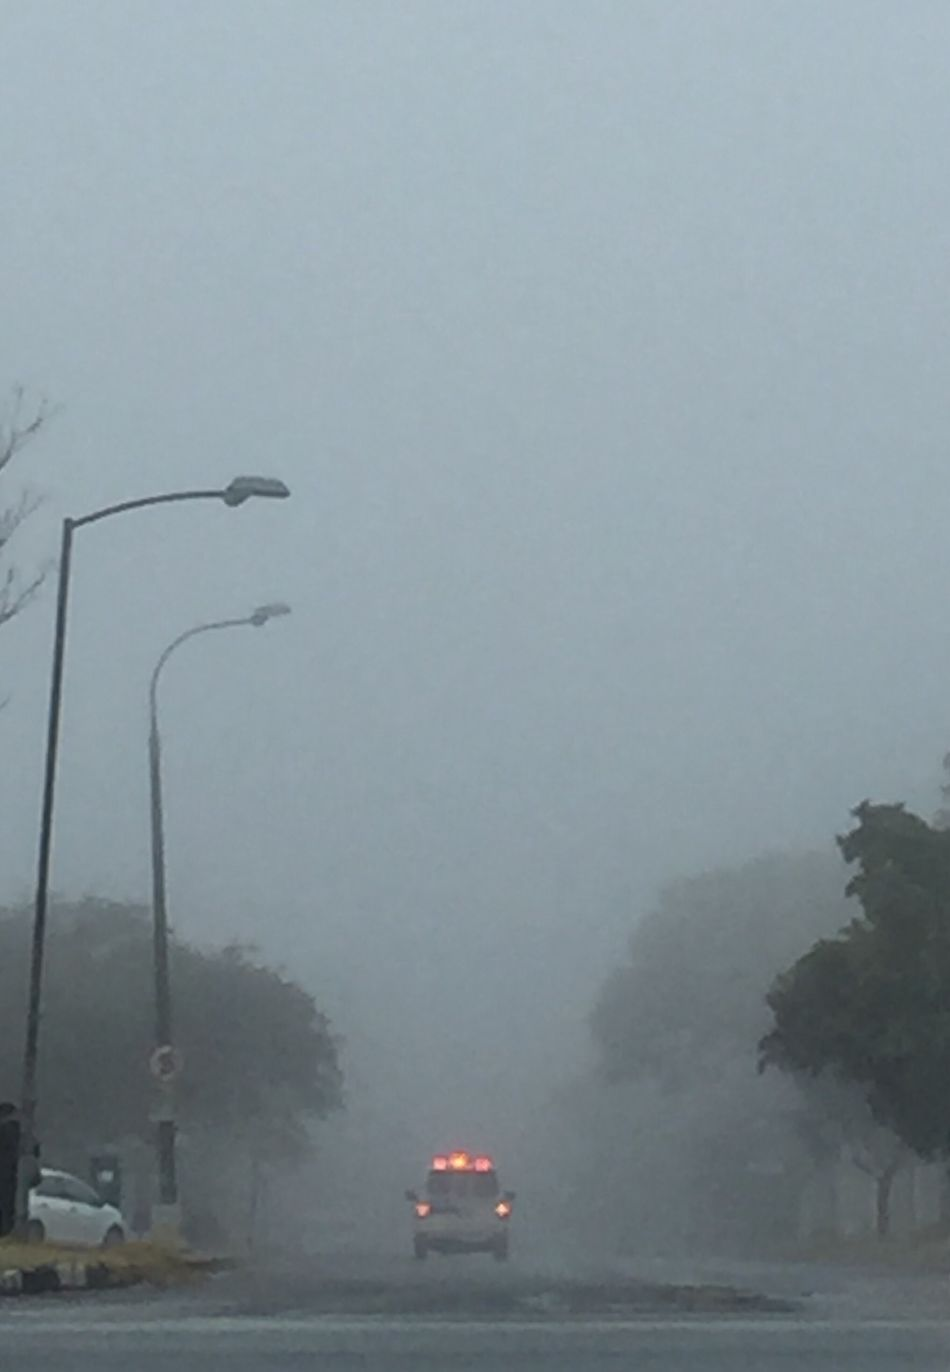 Feel The Journey Mist Midday Ambulance Red Lights Accident? Wet Road Wintertime Street Lamps